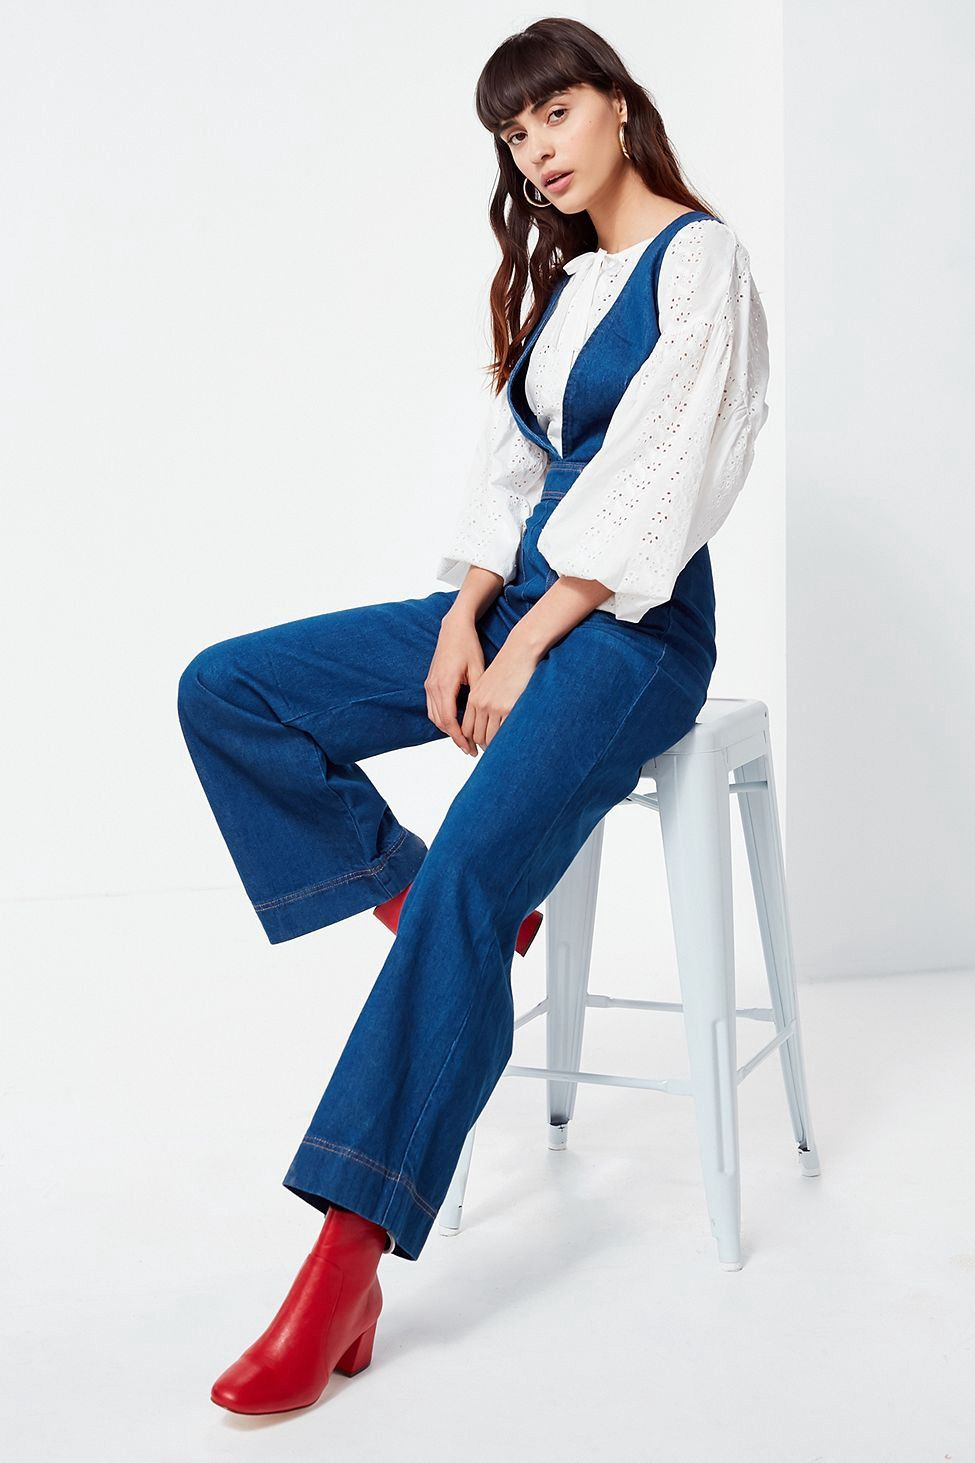 b732de16cc0f UO Eleanor Plunging Denim Jumpsuit by Urban Outfitters in 2019 ...